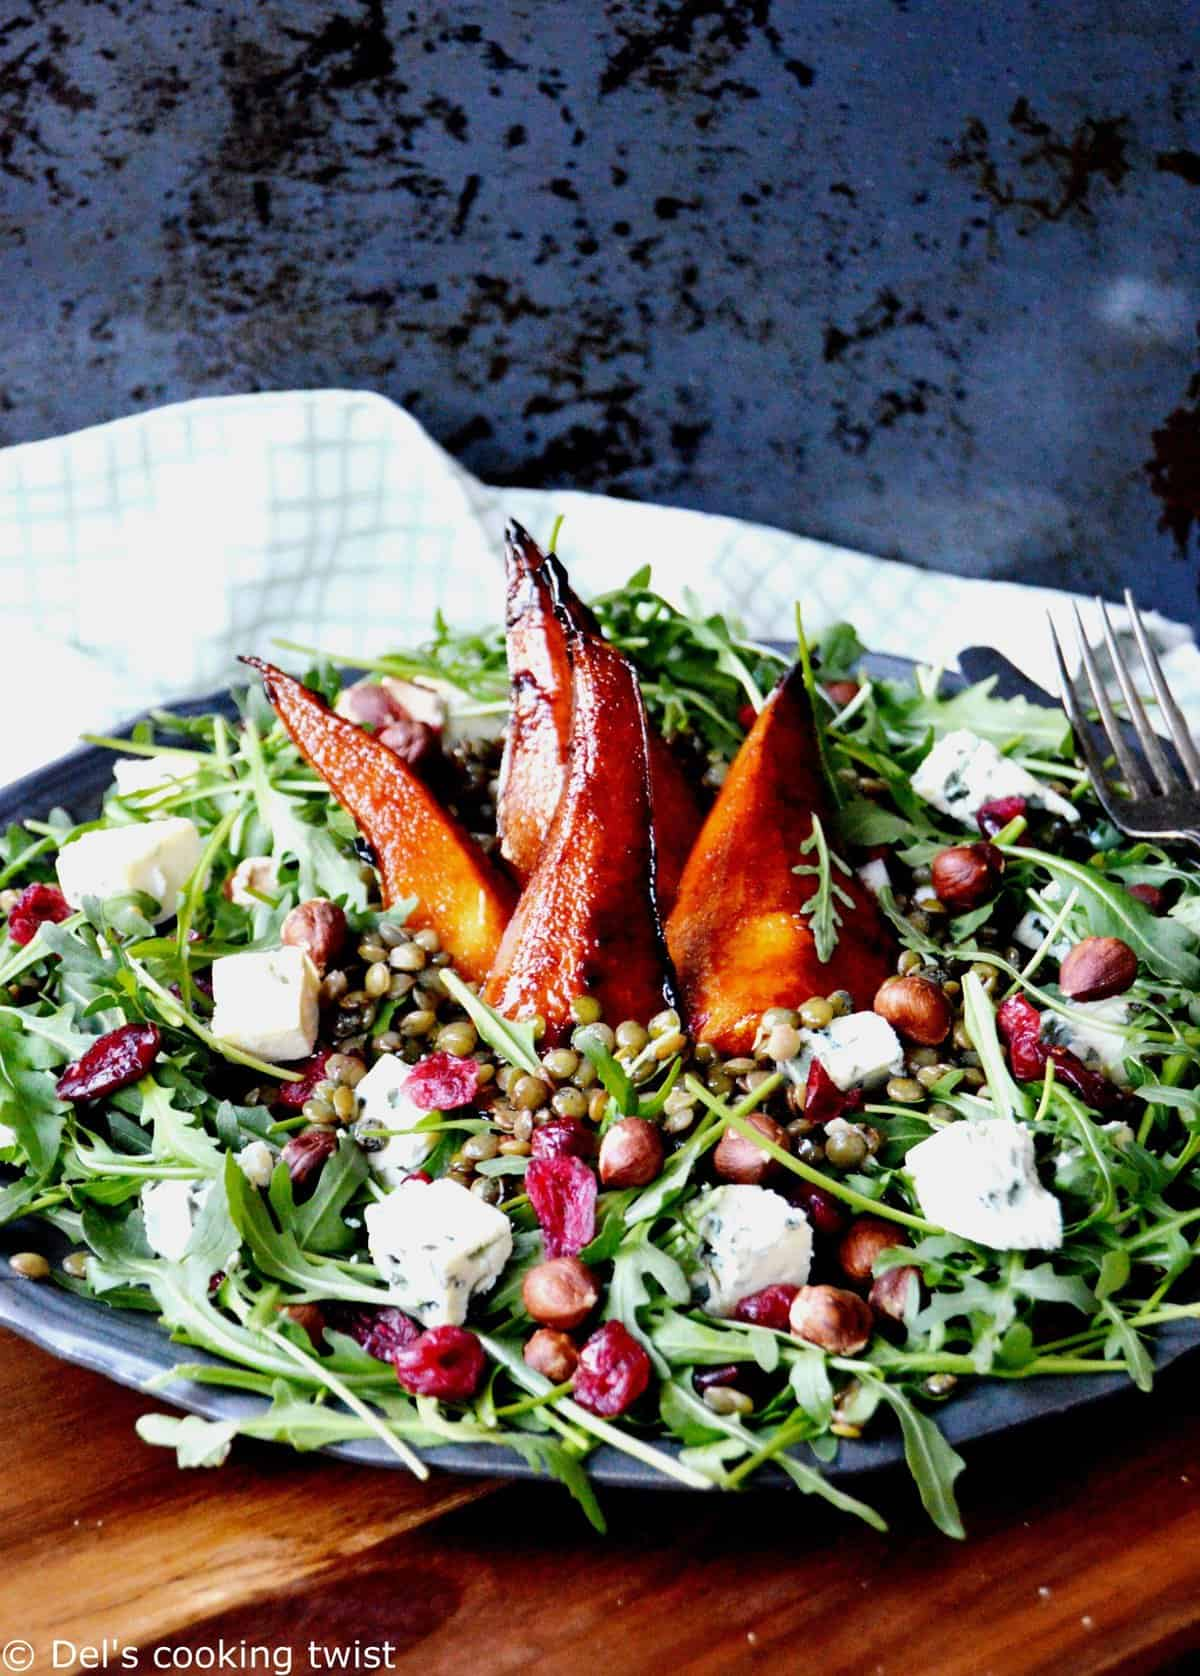 Lentil salad with blue cheese and pears